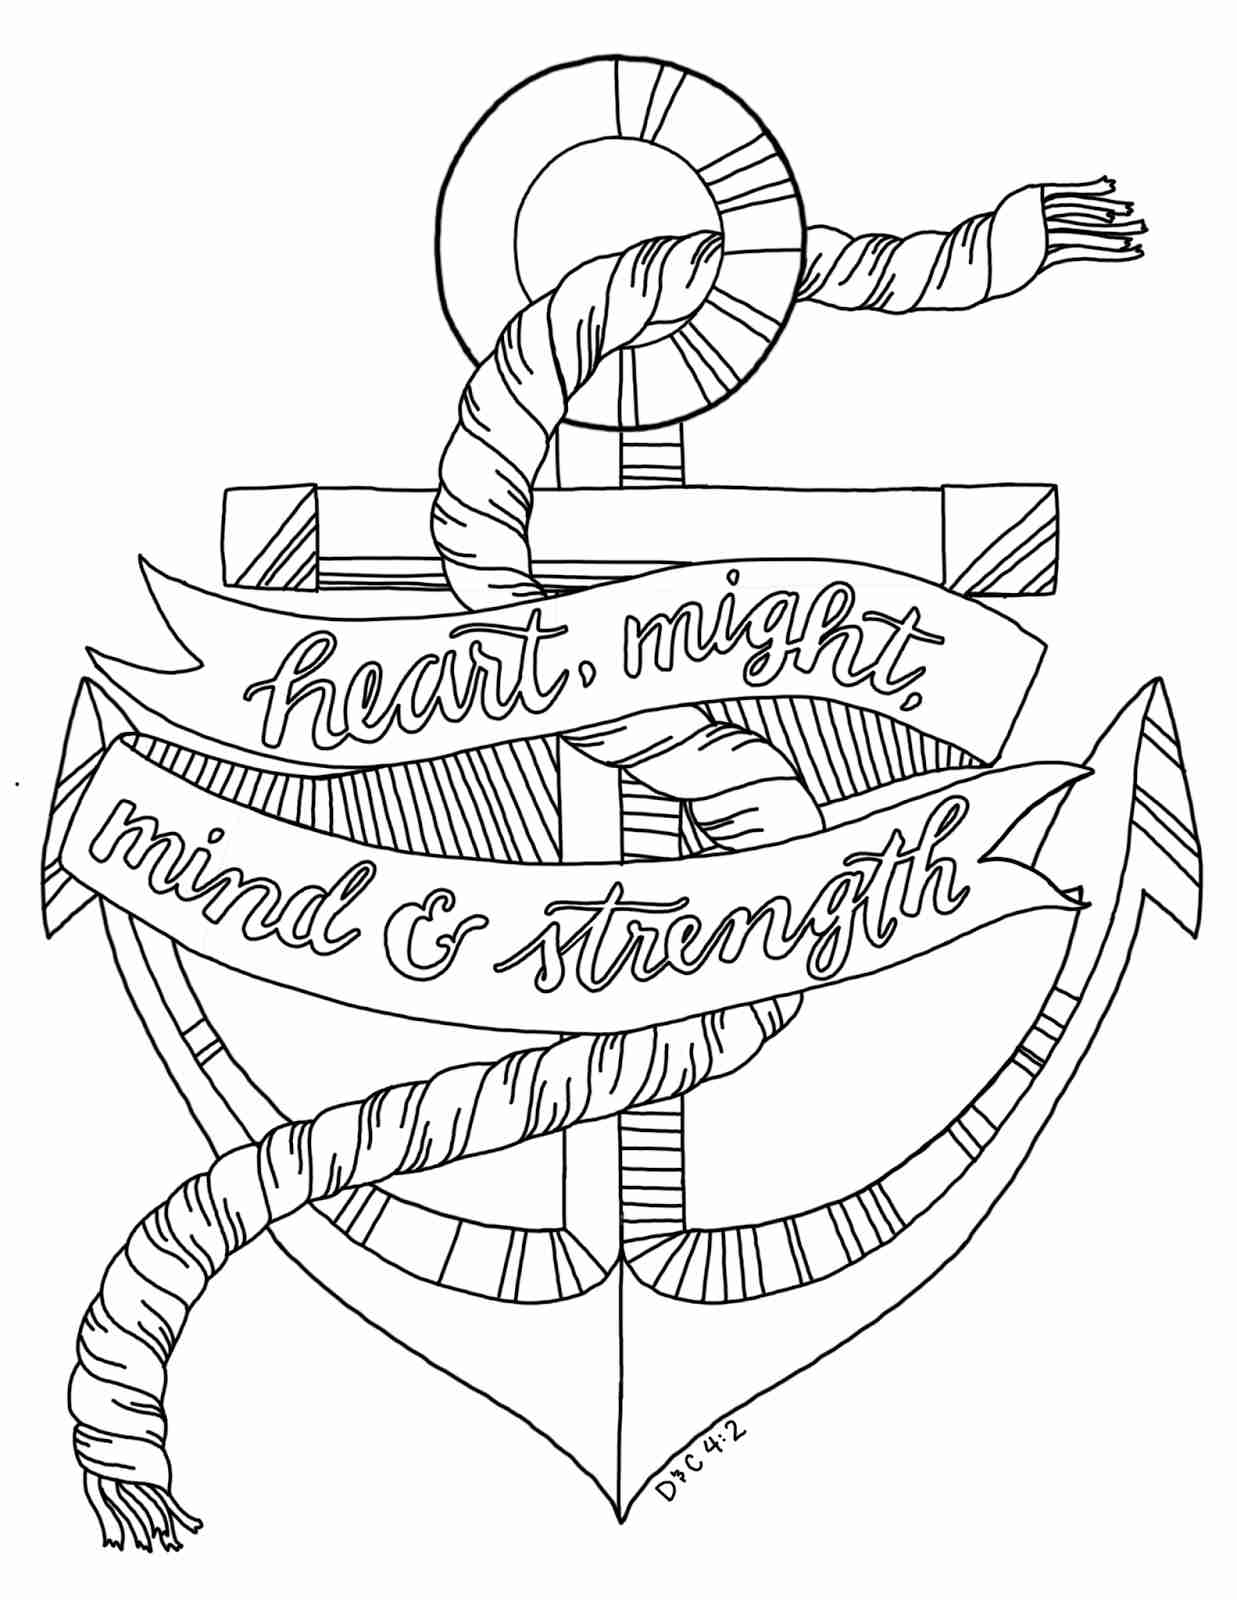 anchor coloring page printable anchor coloring pages at getcoloringscom free page anchor coloring